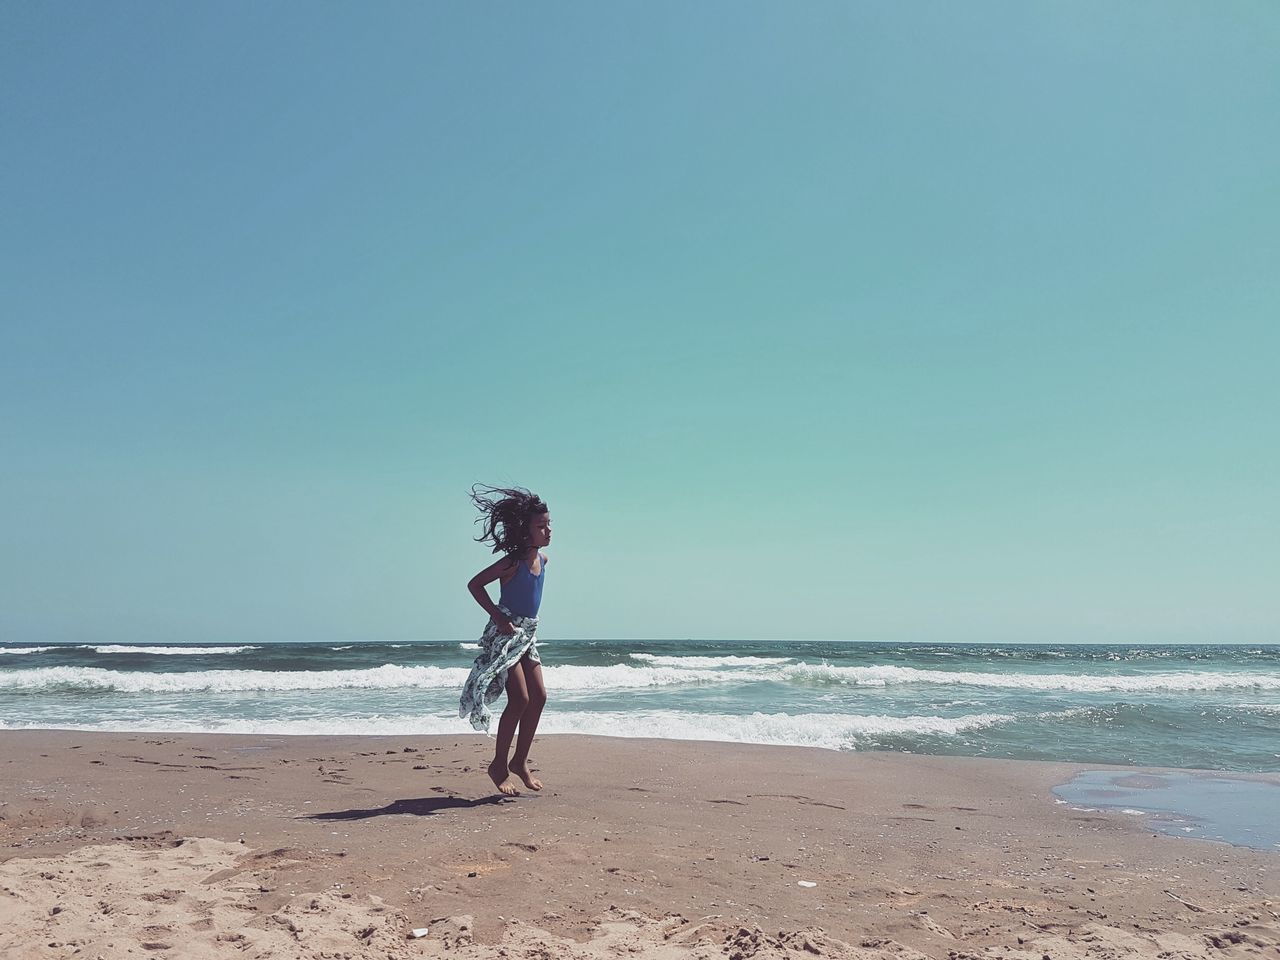 Sea Beach Photography Summer Summer2016 Beauty In Nature SICILY 2016 - Series Sicily Landscape Child At The Beach Jumping Horizon Over Water Sand Full Length Vacations Tranquil Scene Coastline Sky Blue Idyllic Day Enjoyment Peoples And Places People And Places.